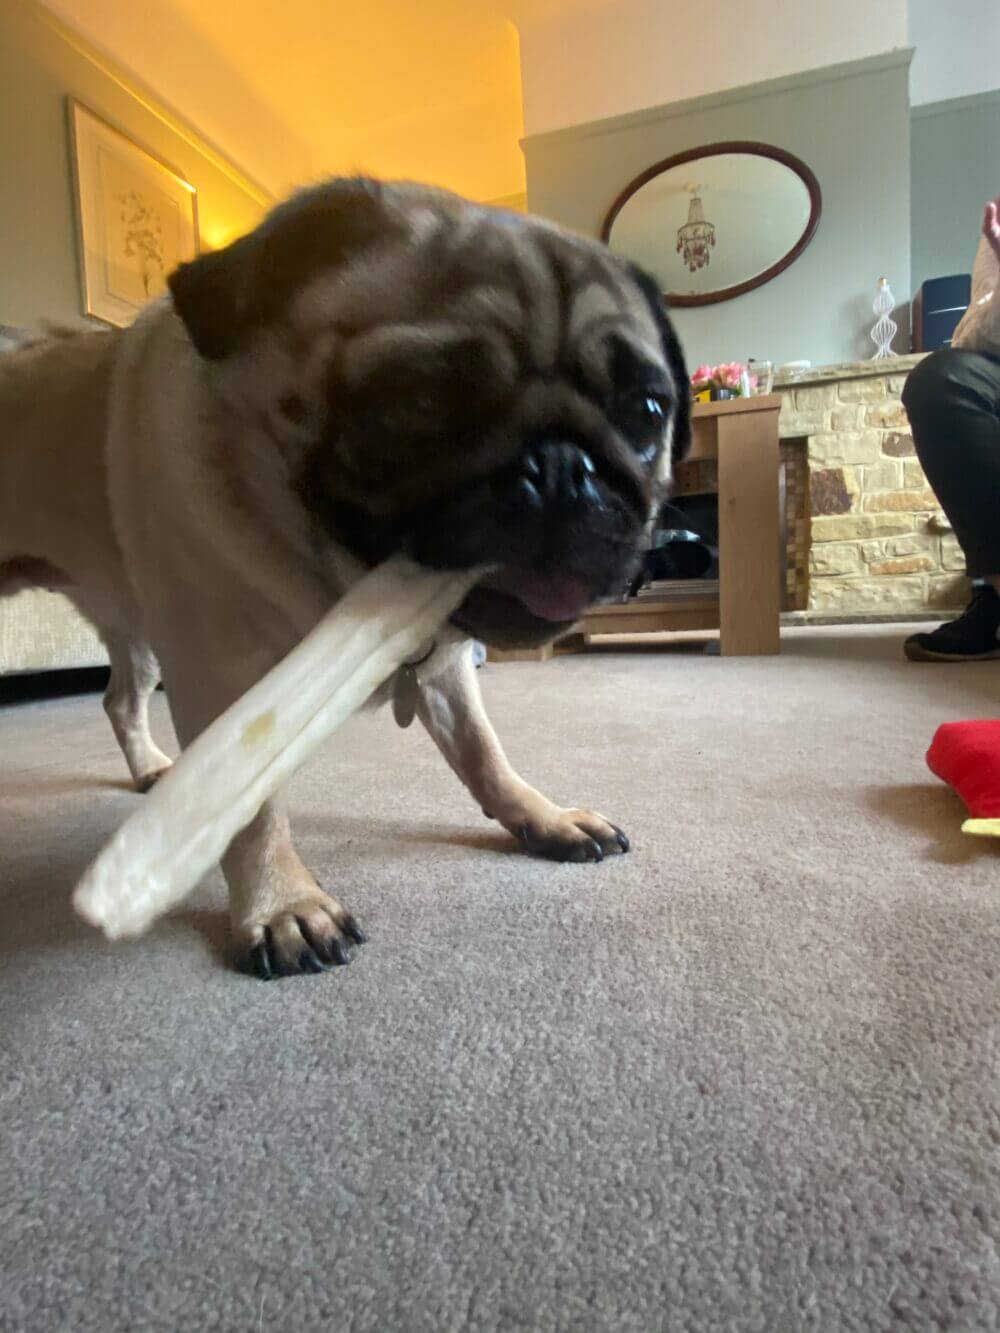 A pug, Taser aka Lily, chewing a chew stick